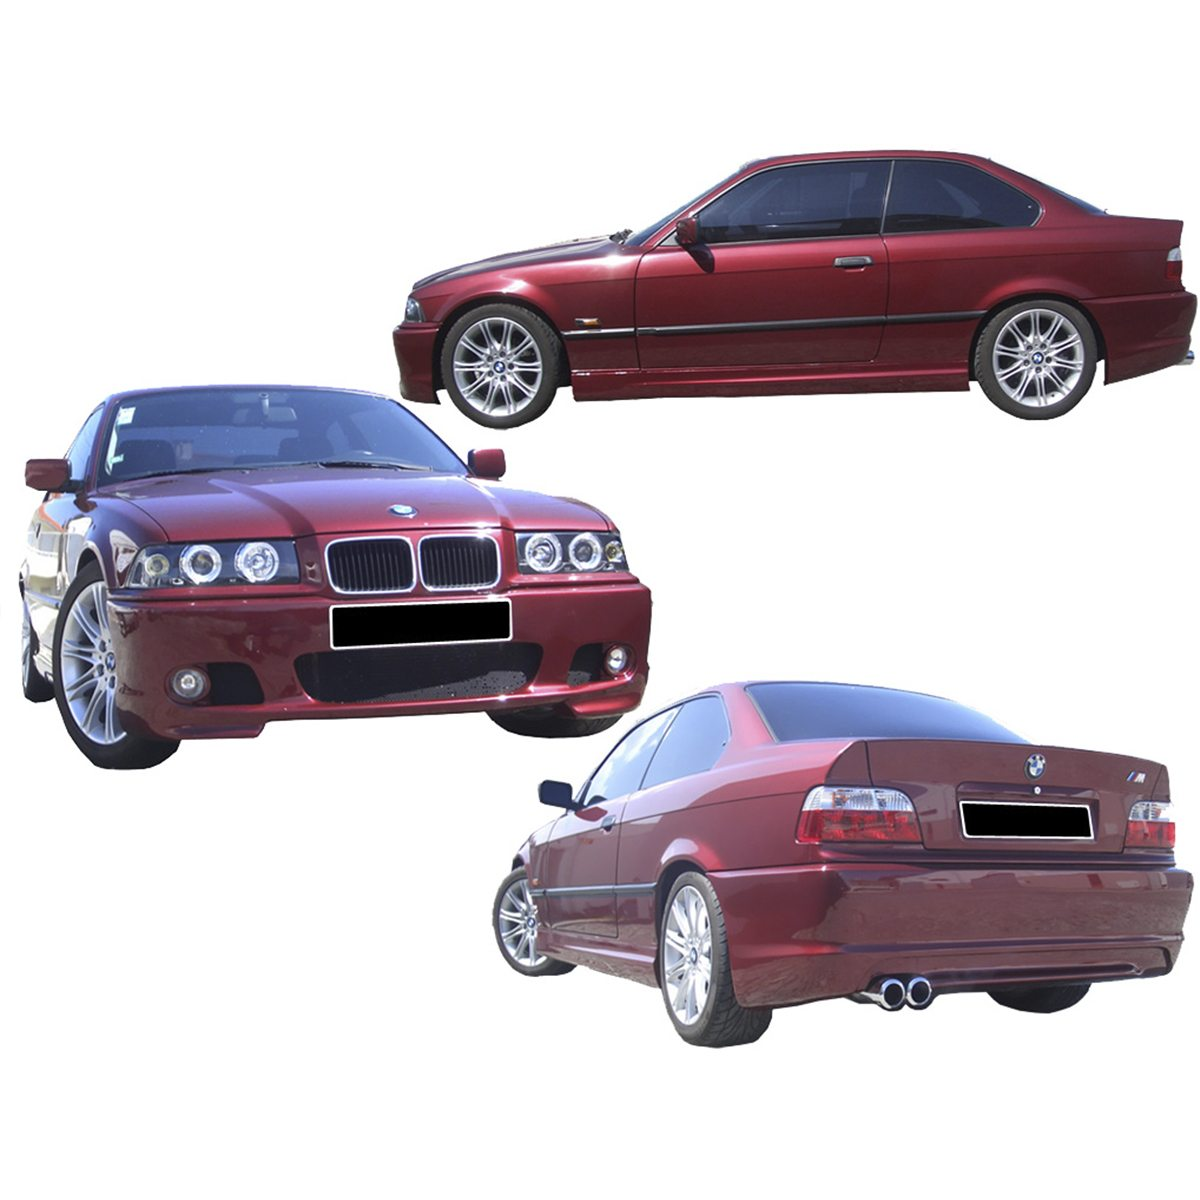 BMW-E36-M-Look-KIT-QTU078